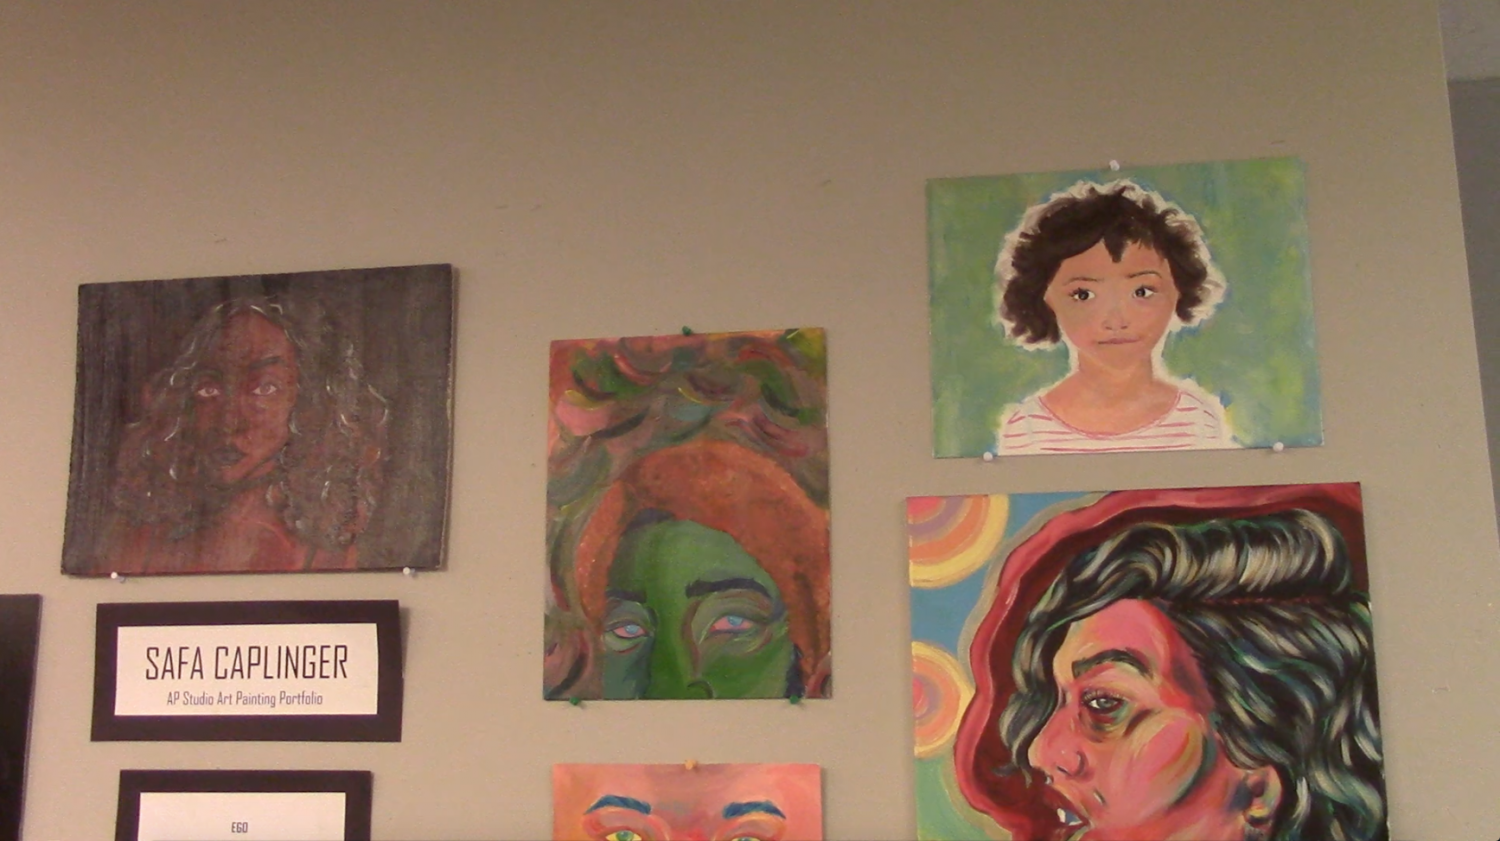 Safa Caplinger created the painted portraits seen in the Sun during the art show on Thursday, April 20th, and then on display in the school lobby.